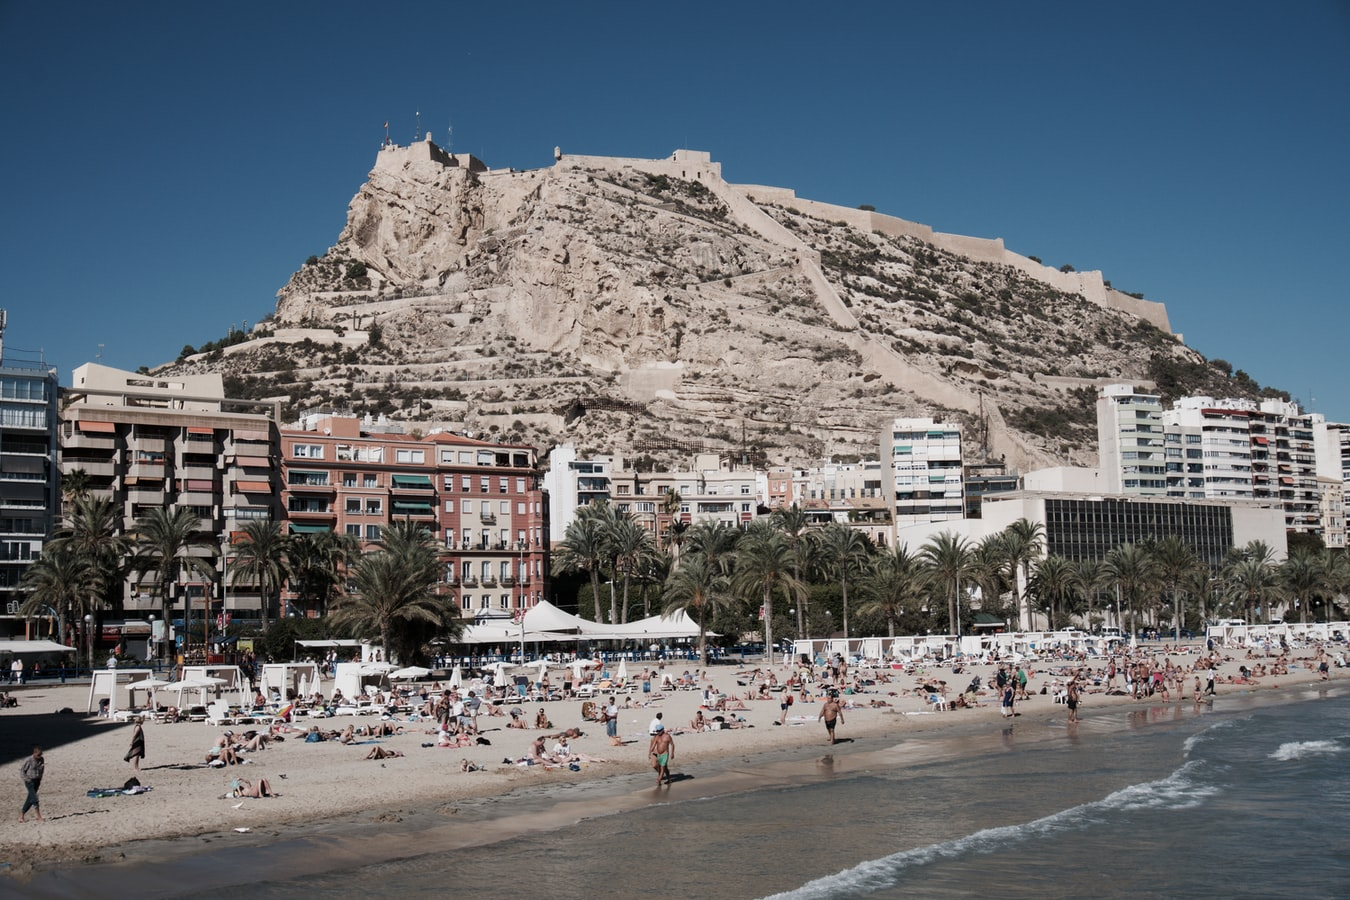 Alicante/ Fuente: Unsplash